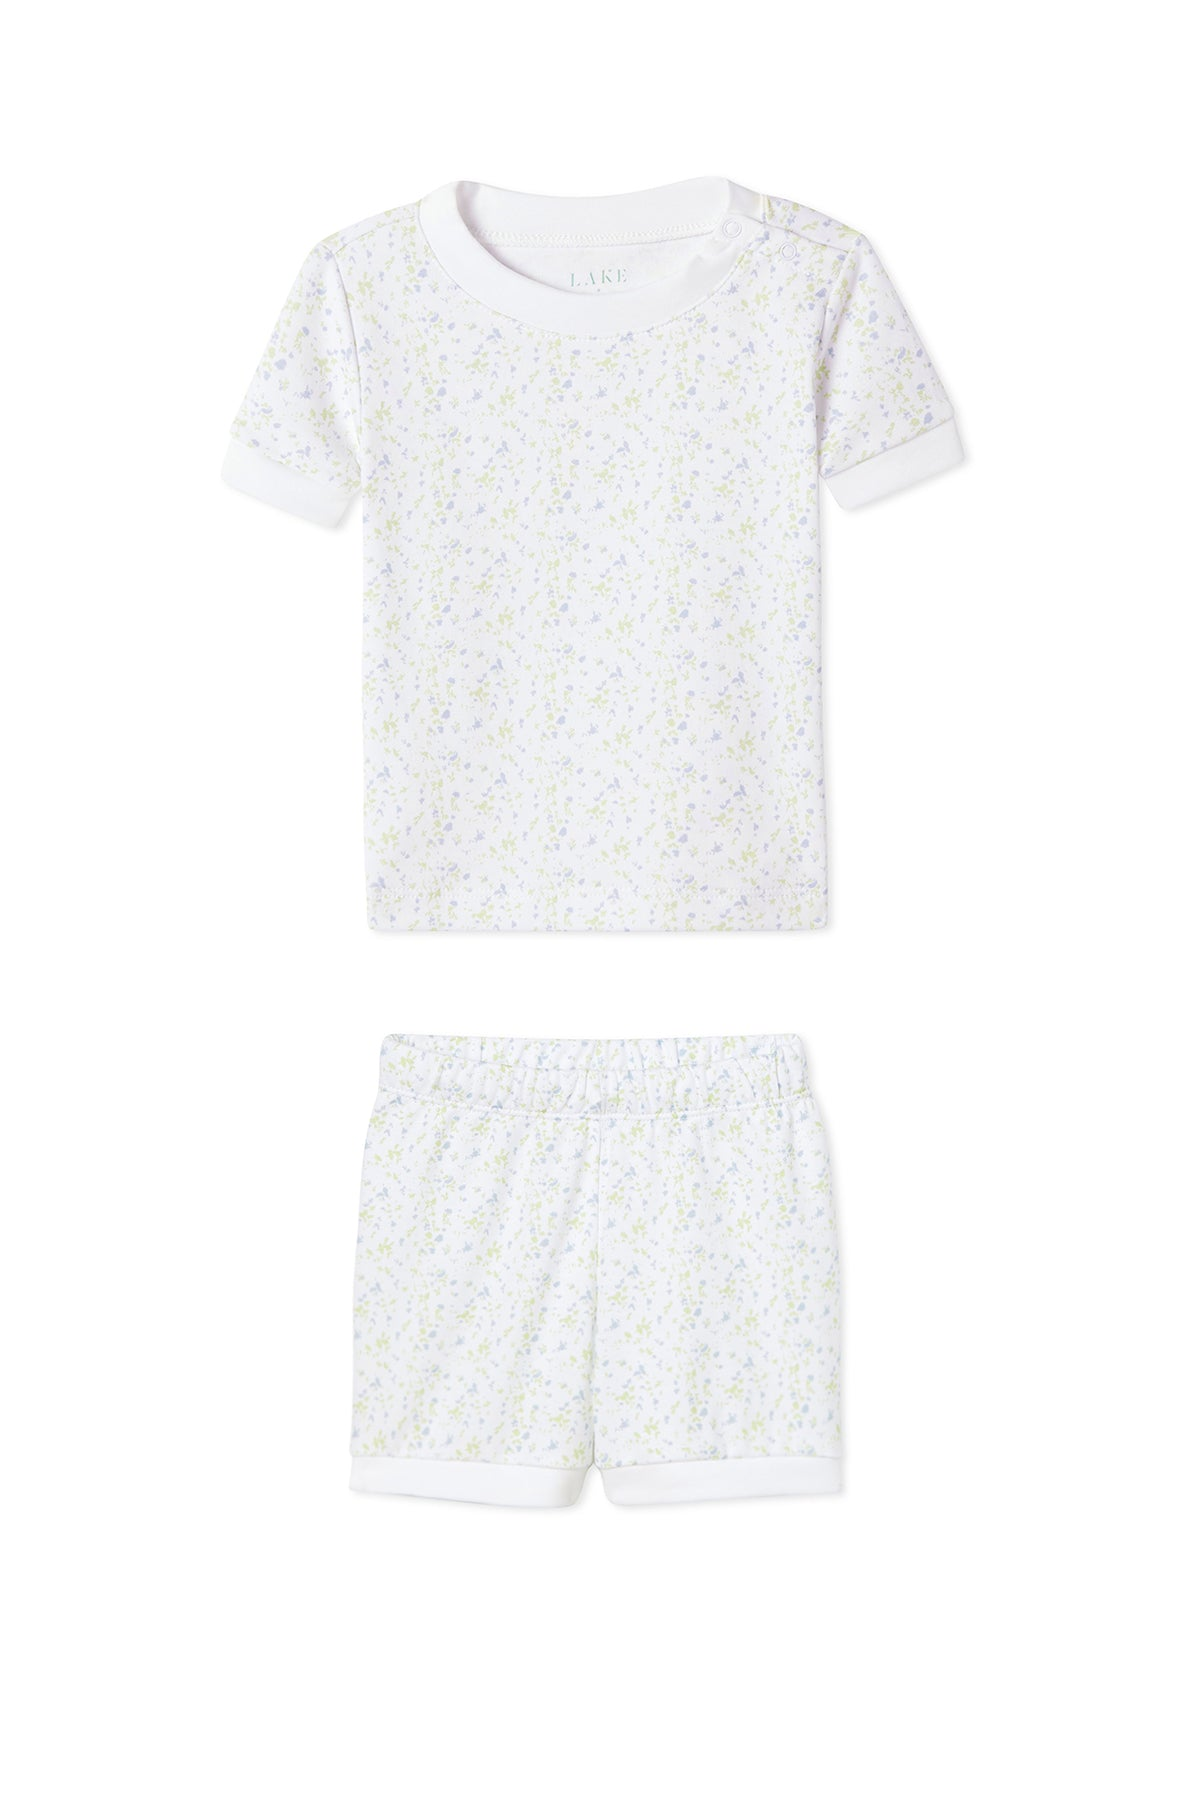 JB x LAKE Baby Shorts Set in Meadow